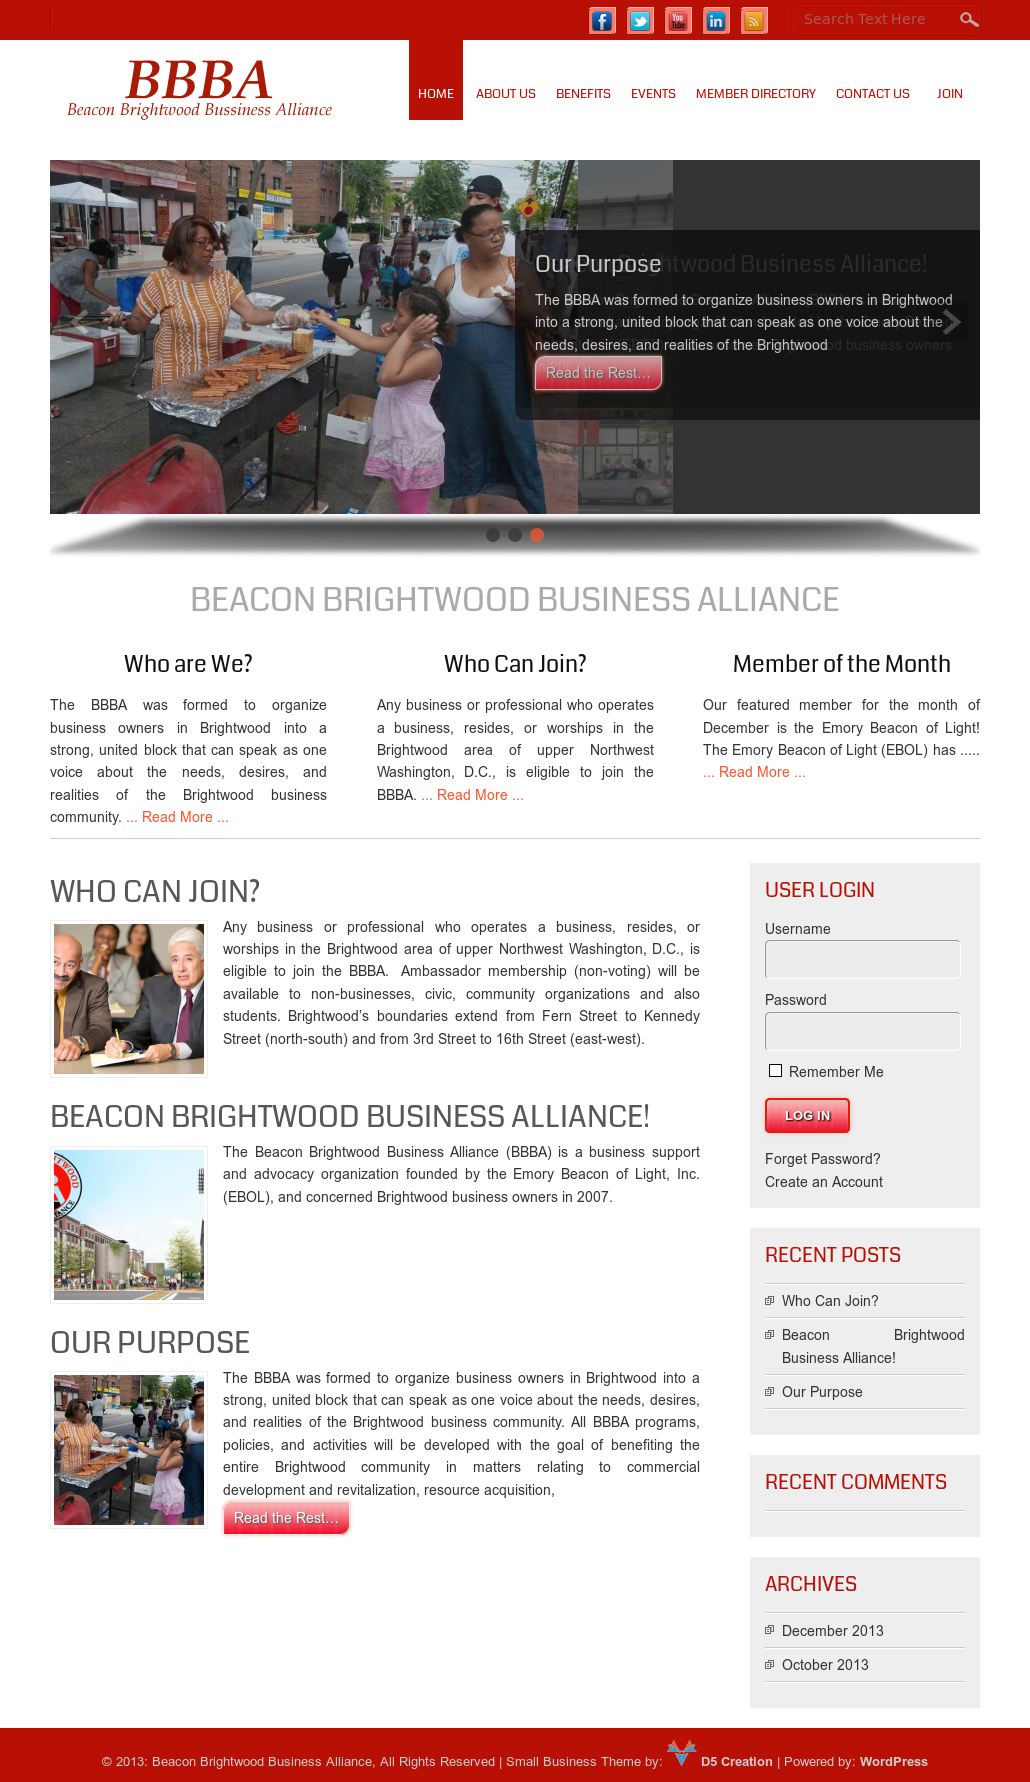 Beacon Brightwood Business Alliance Competitors, Revenue and